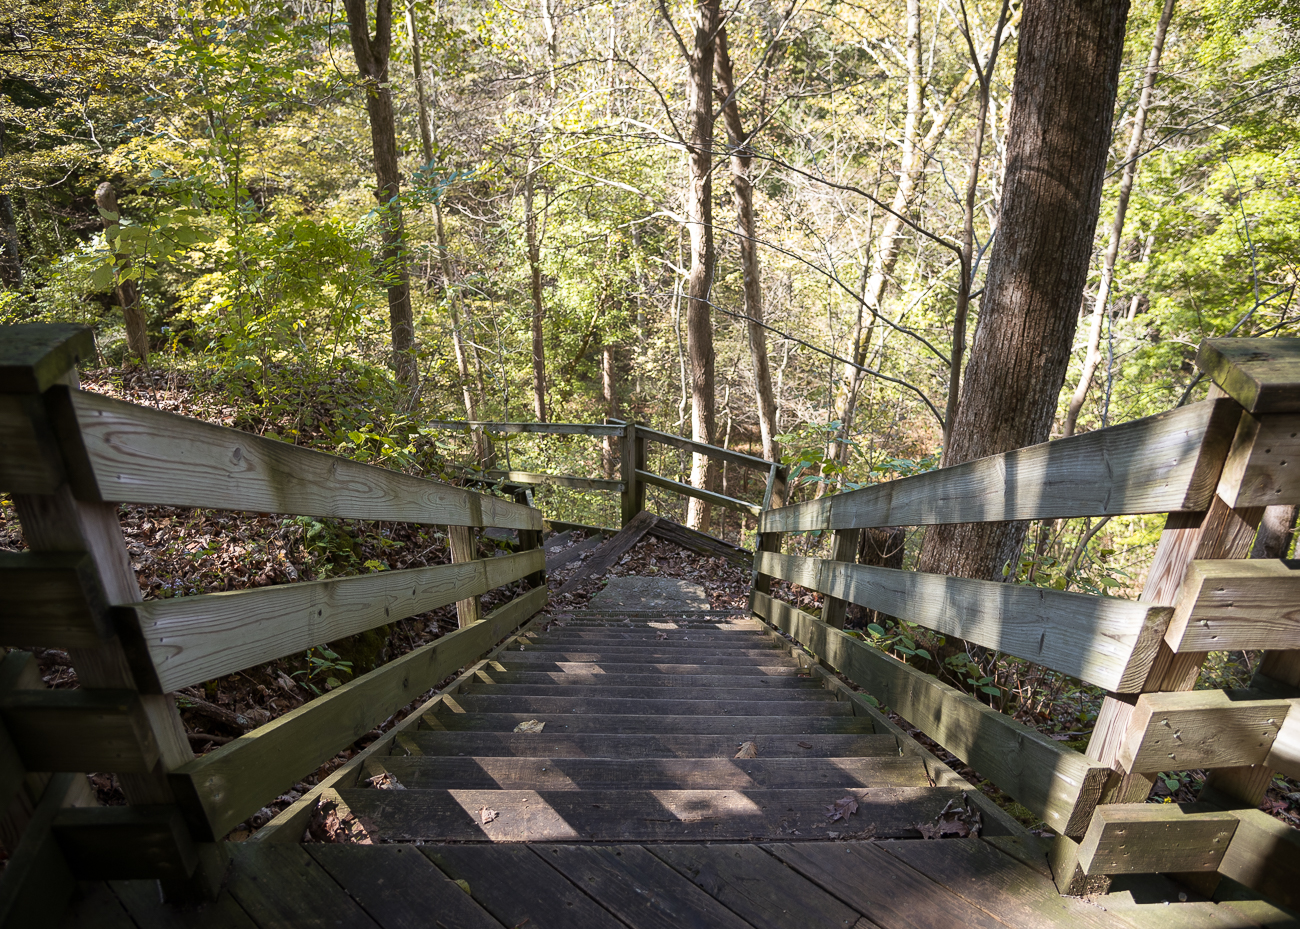 On some trails, wooden stairs and walkways add rustic convenience to the beautiful wilderness surrounding them. / Image: Phil Armstrong, Cincinnati Refined // Published: 10.20.18